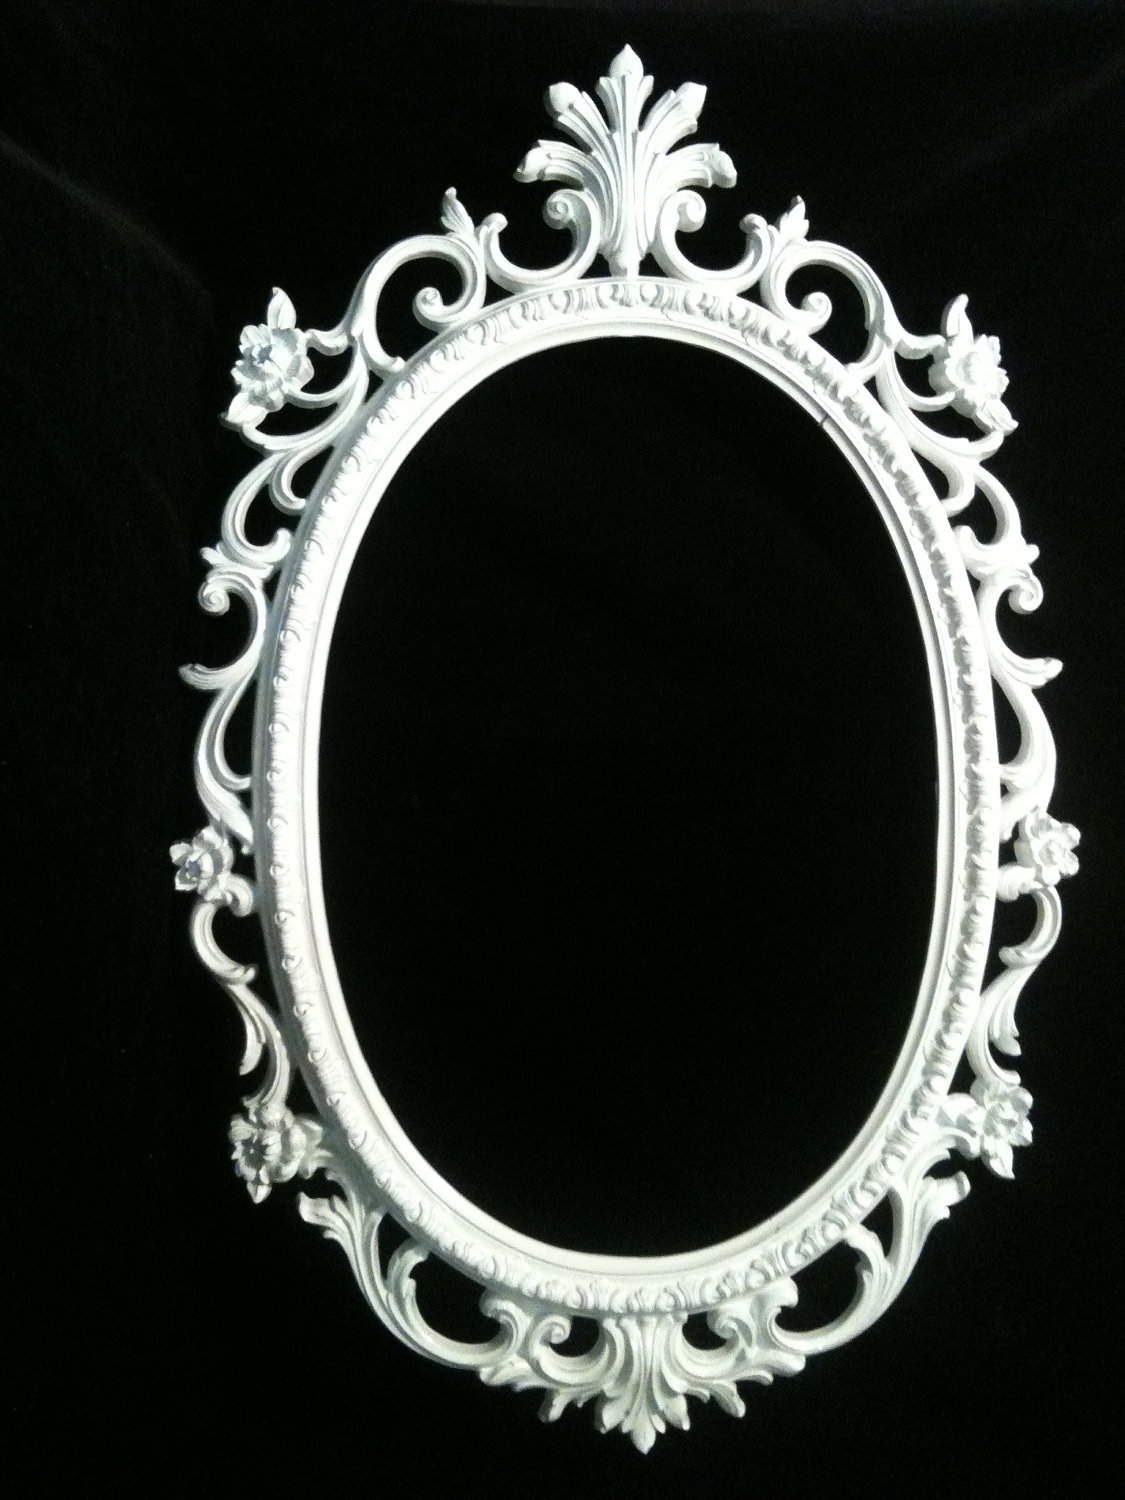 Gloss White Oval Picture Frame Mirror Shab Chic Baroque Gothic Throughout Oval Shabby Chic Mirror (Image 7 of 15)